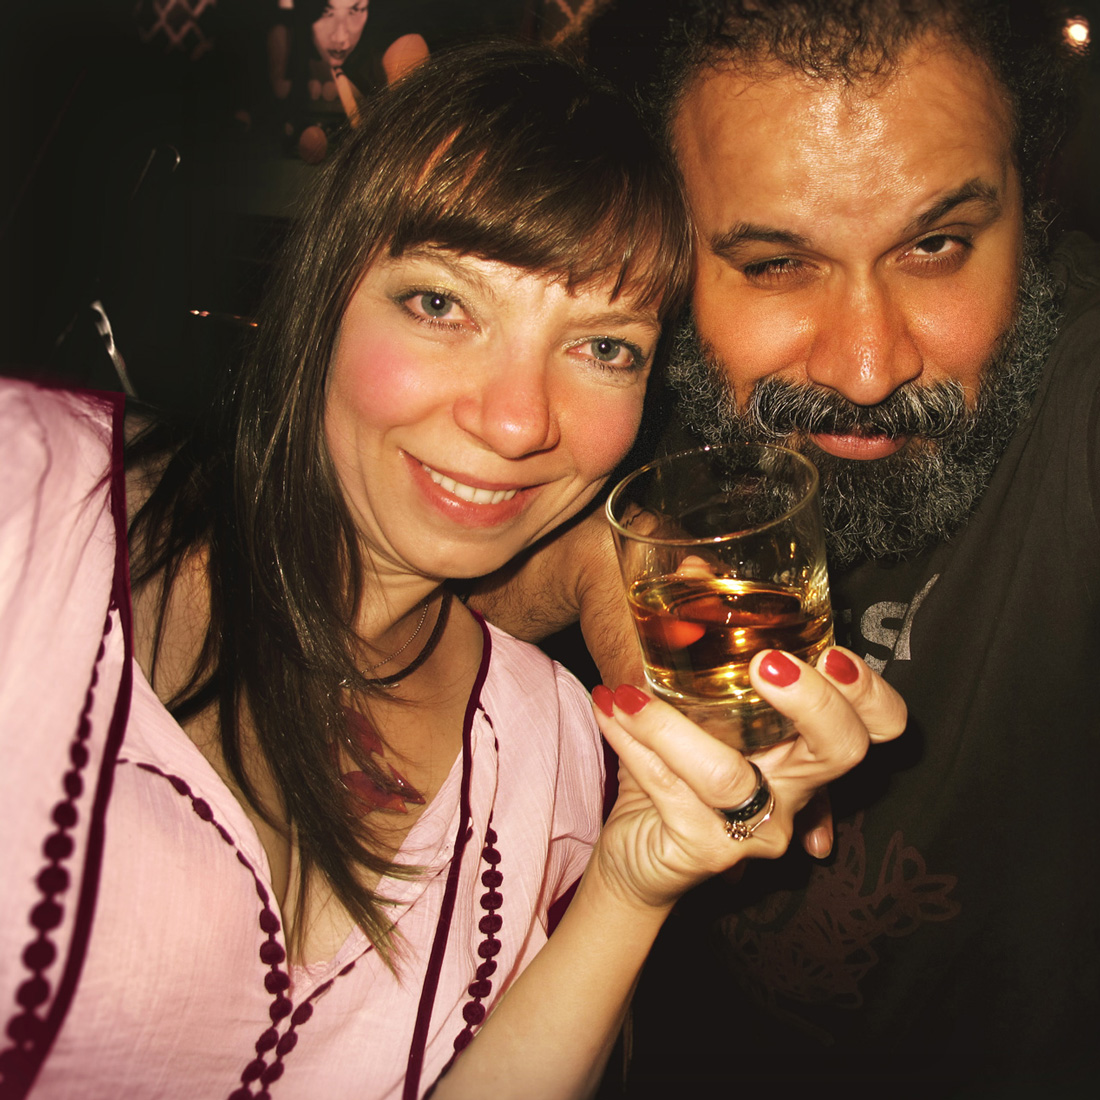 Agnieszka Drapala-Perrotta and William Fuentes are Whisky Wolves under the full moon